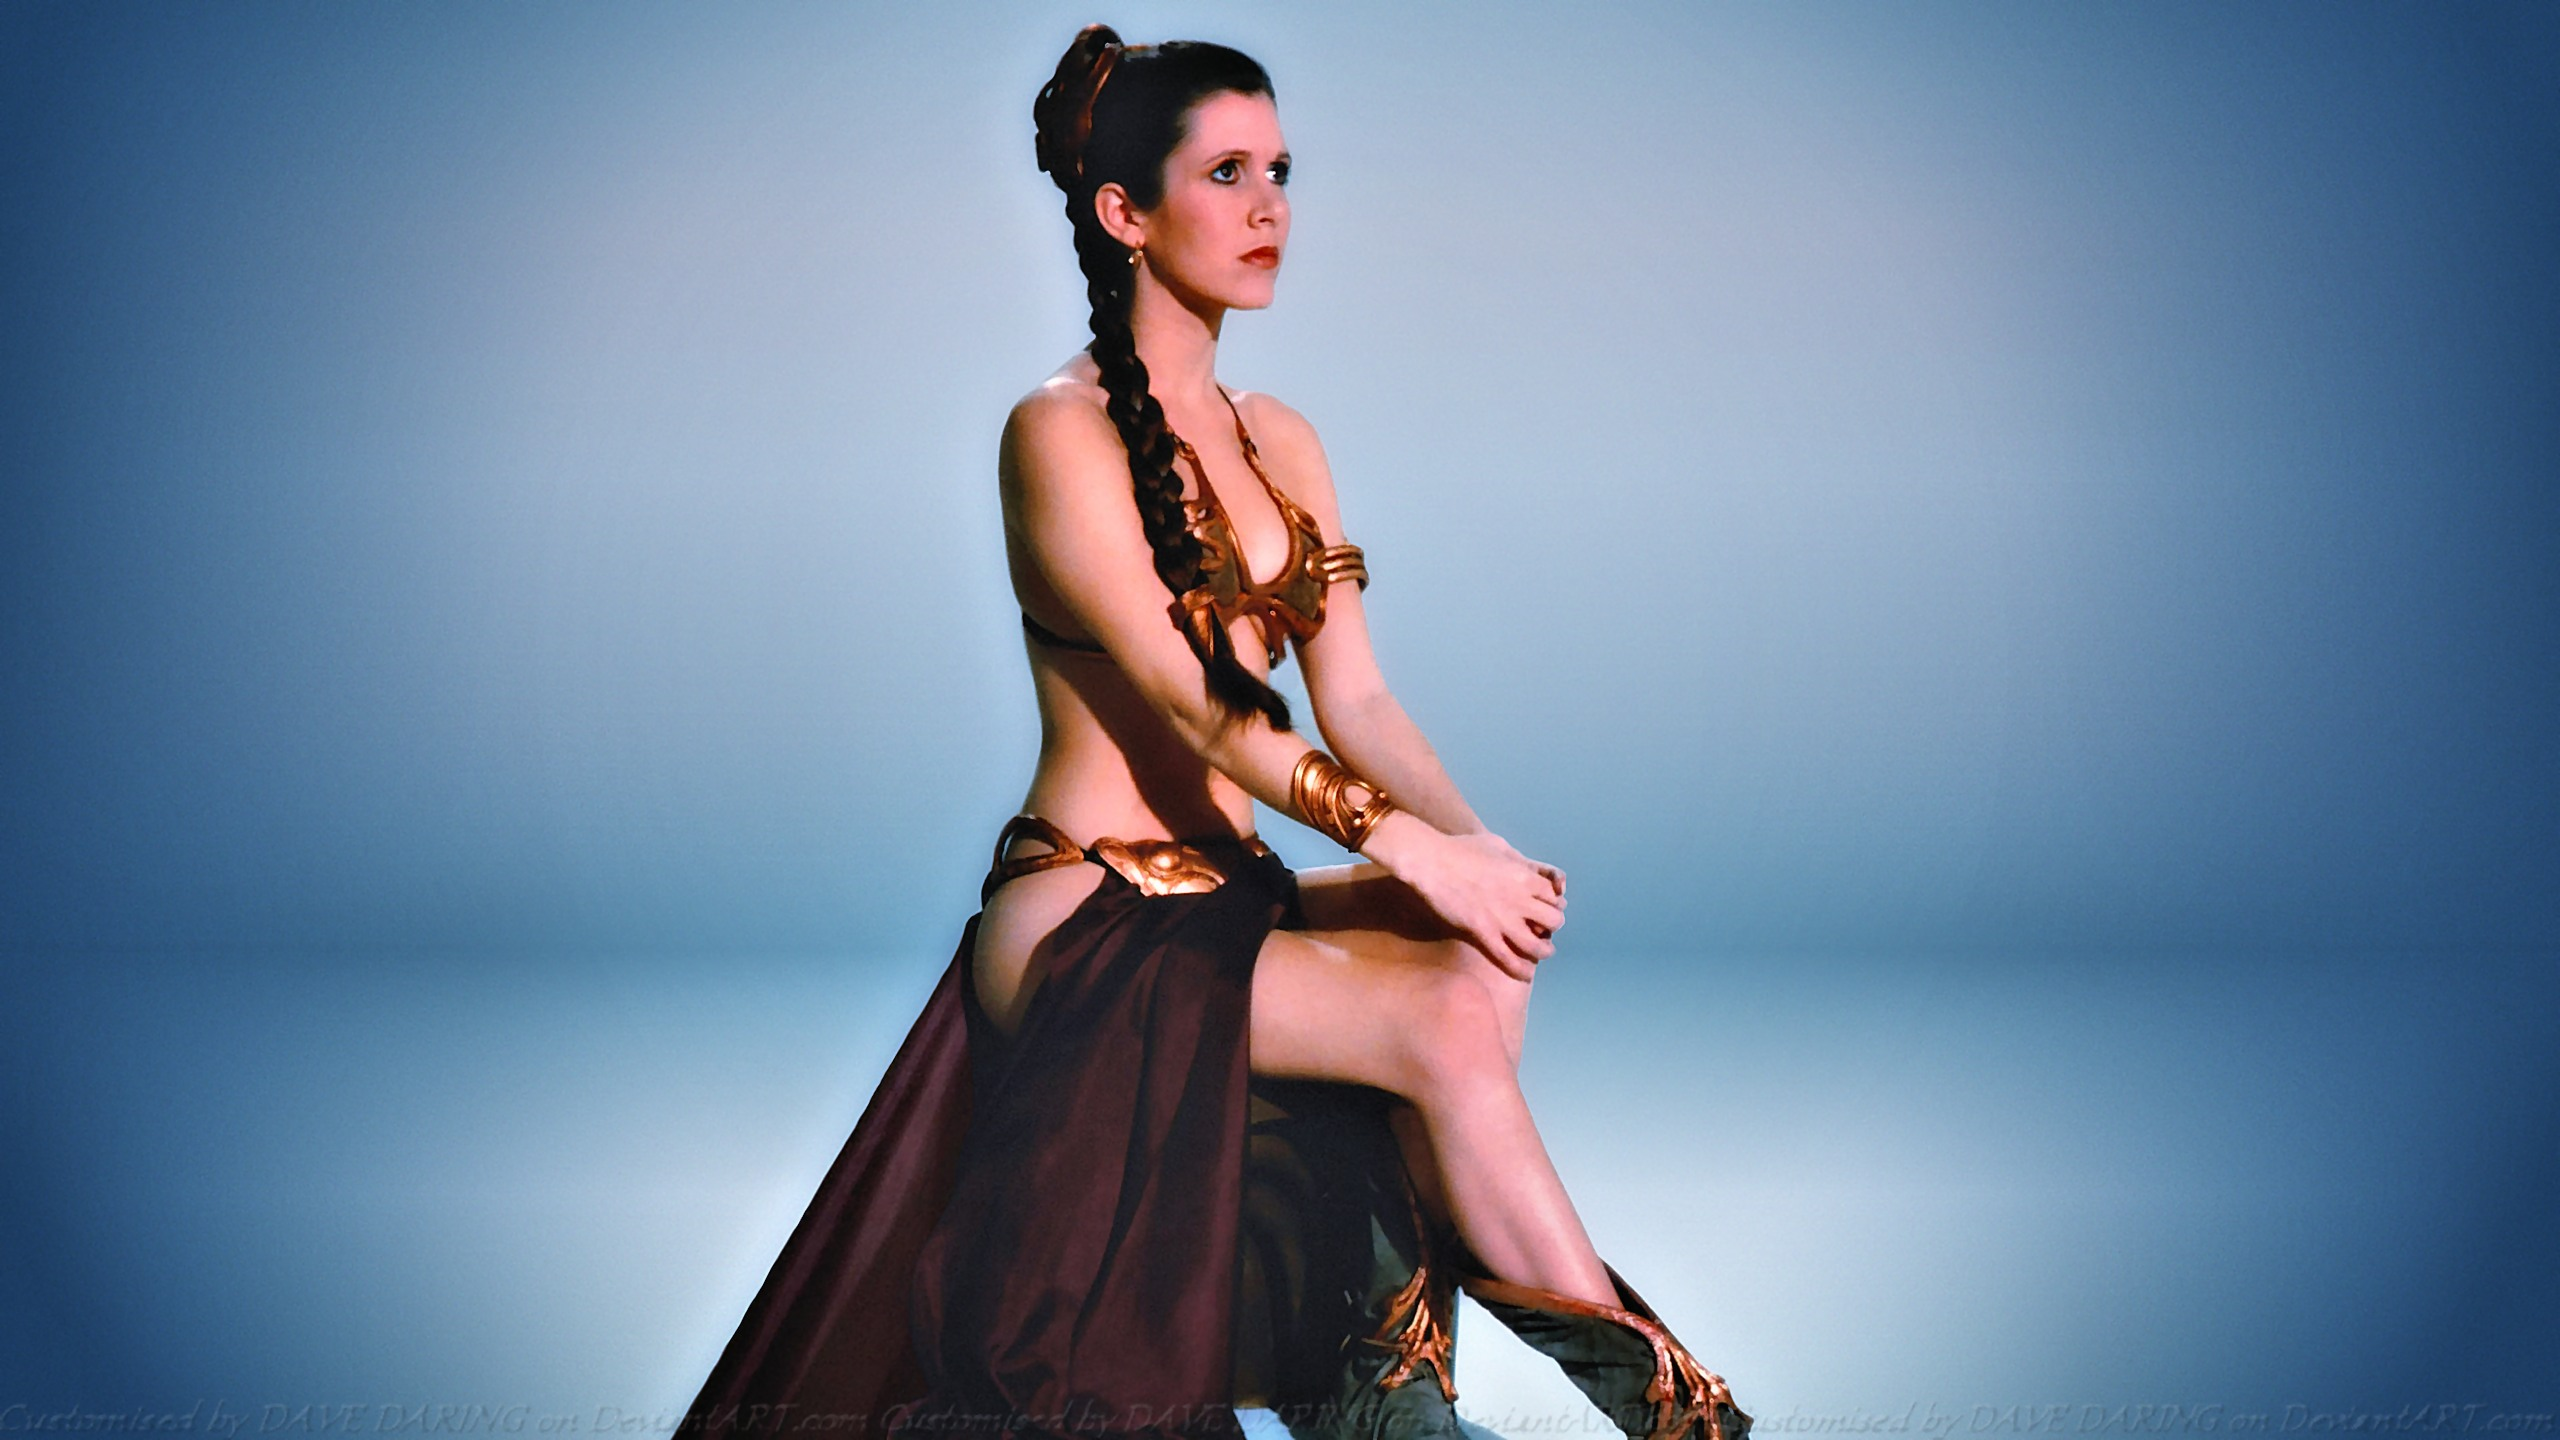 Carrie Fisher Slave Girl Princess IX by Dave-Daring